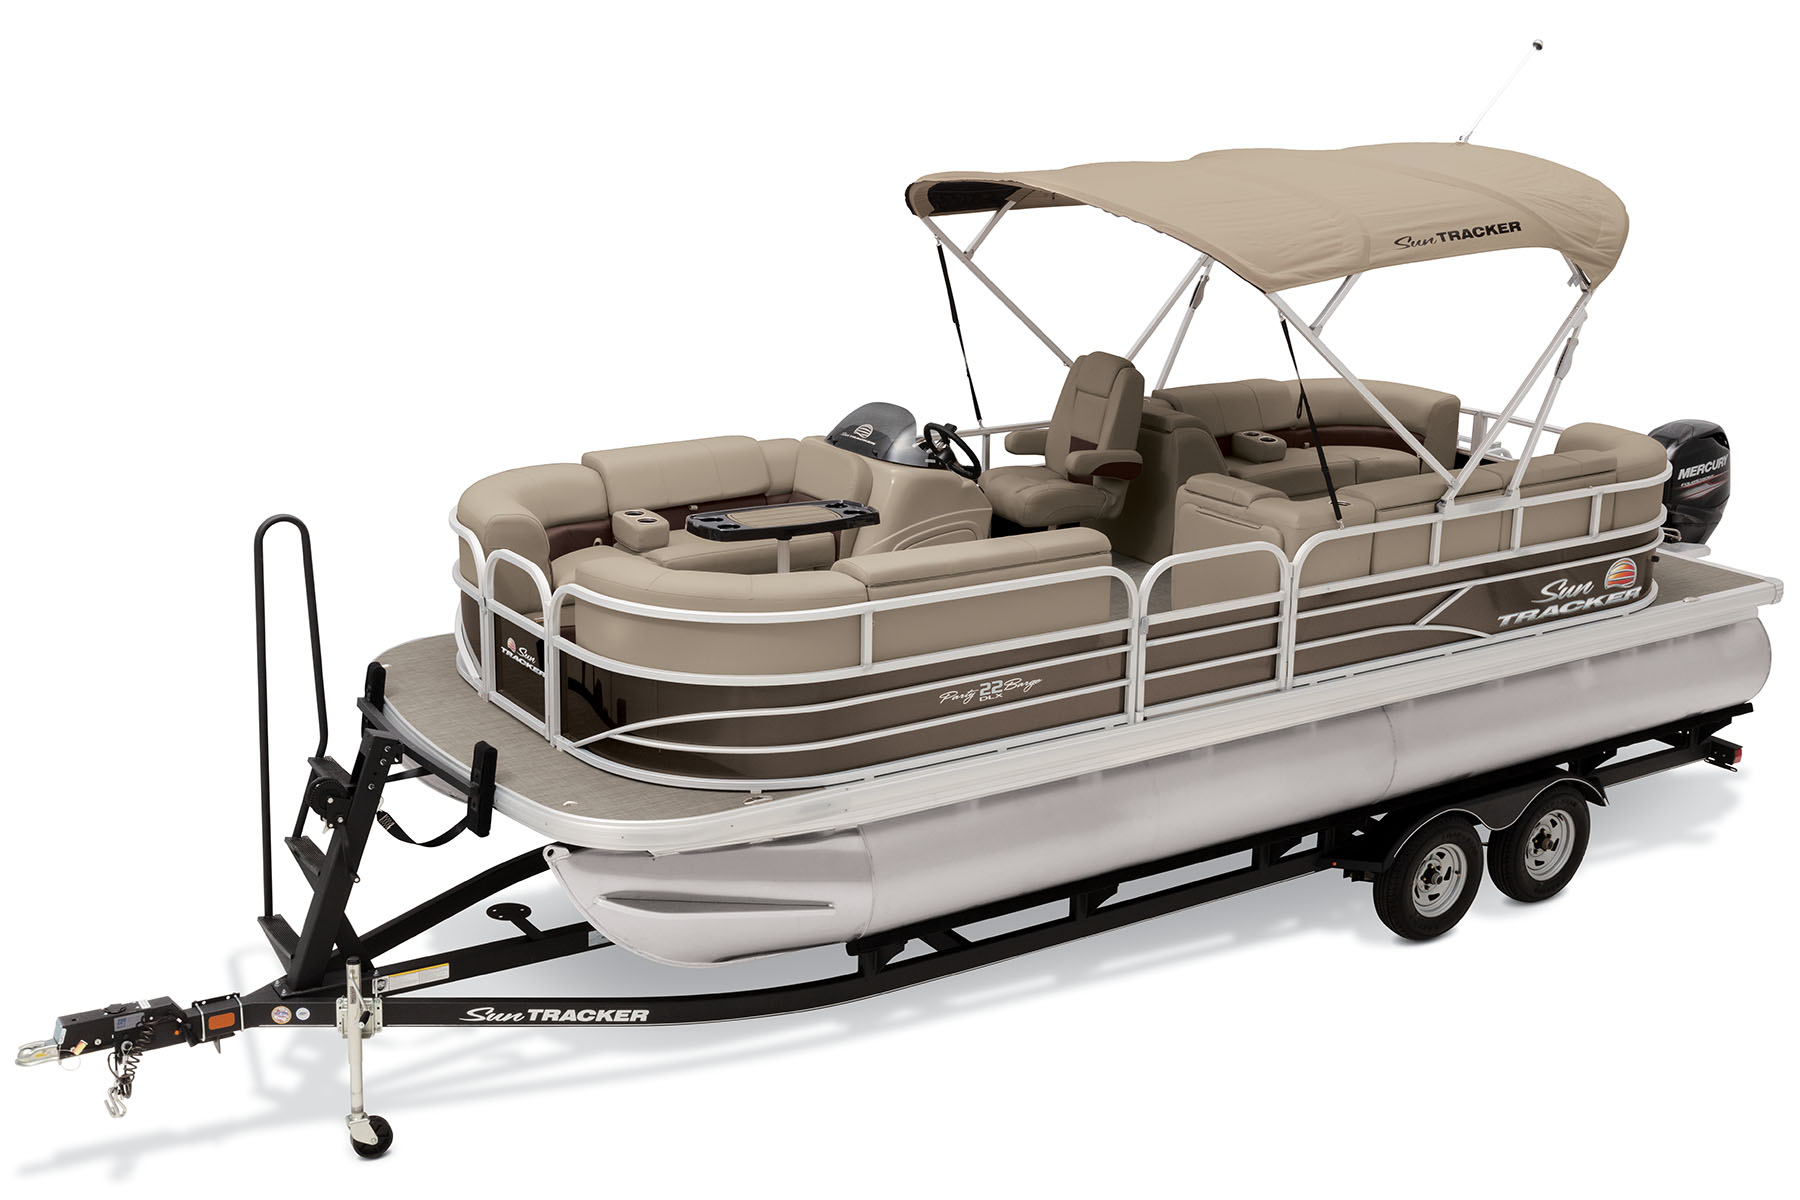 Party Barge 22 DLX -